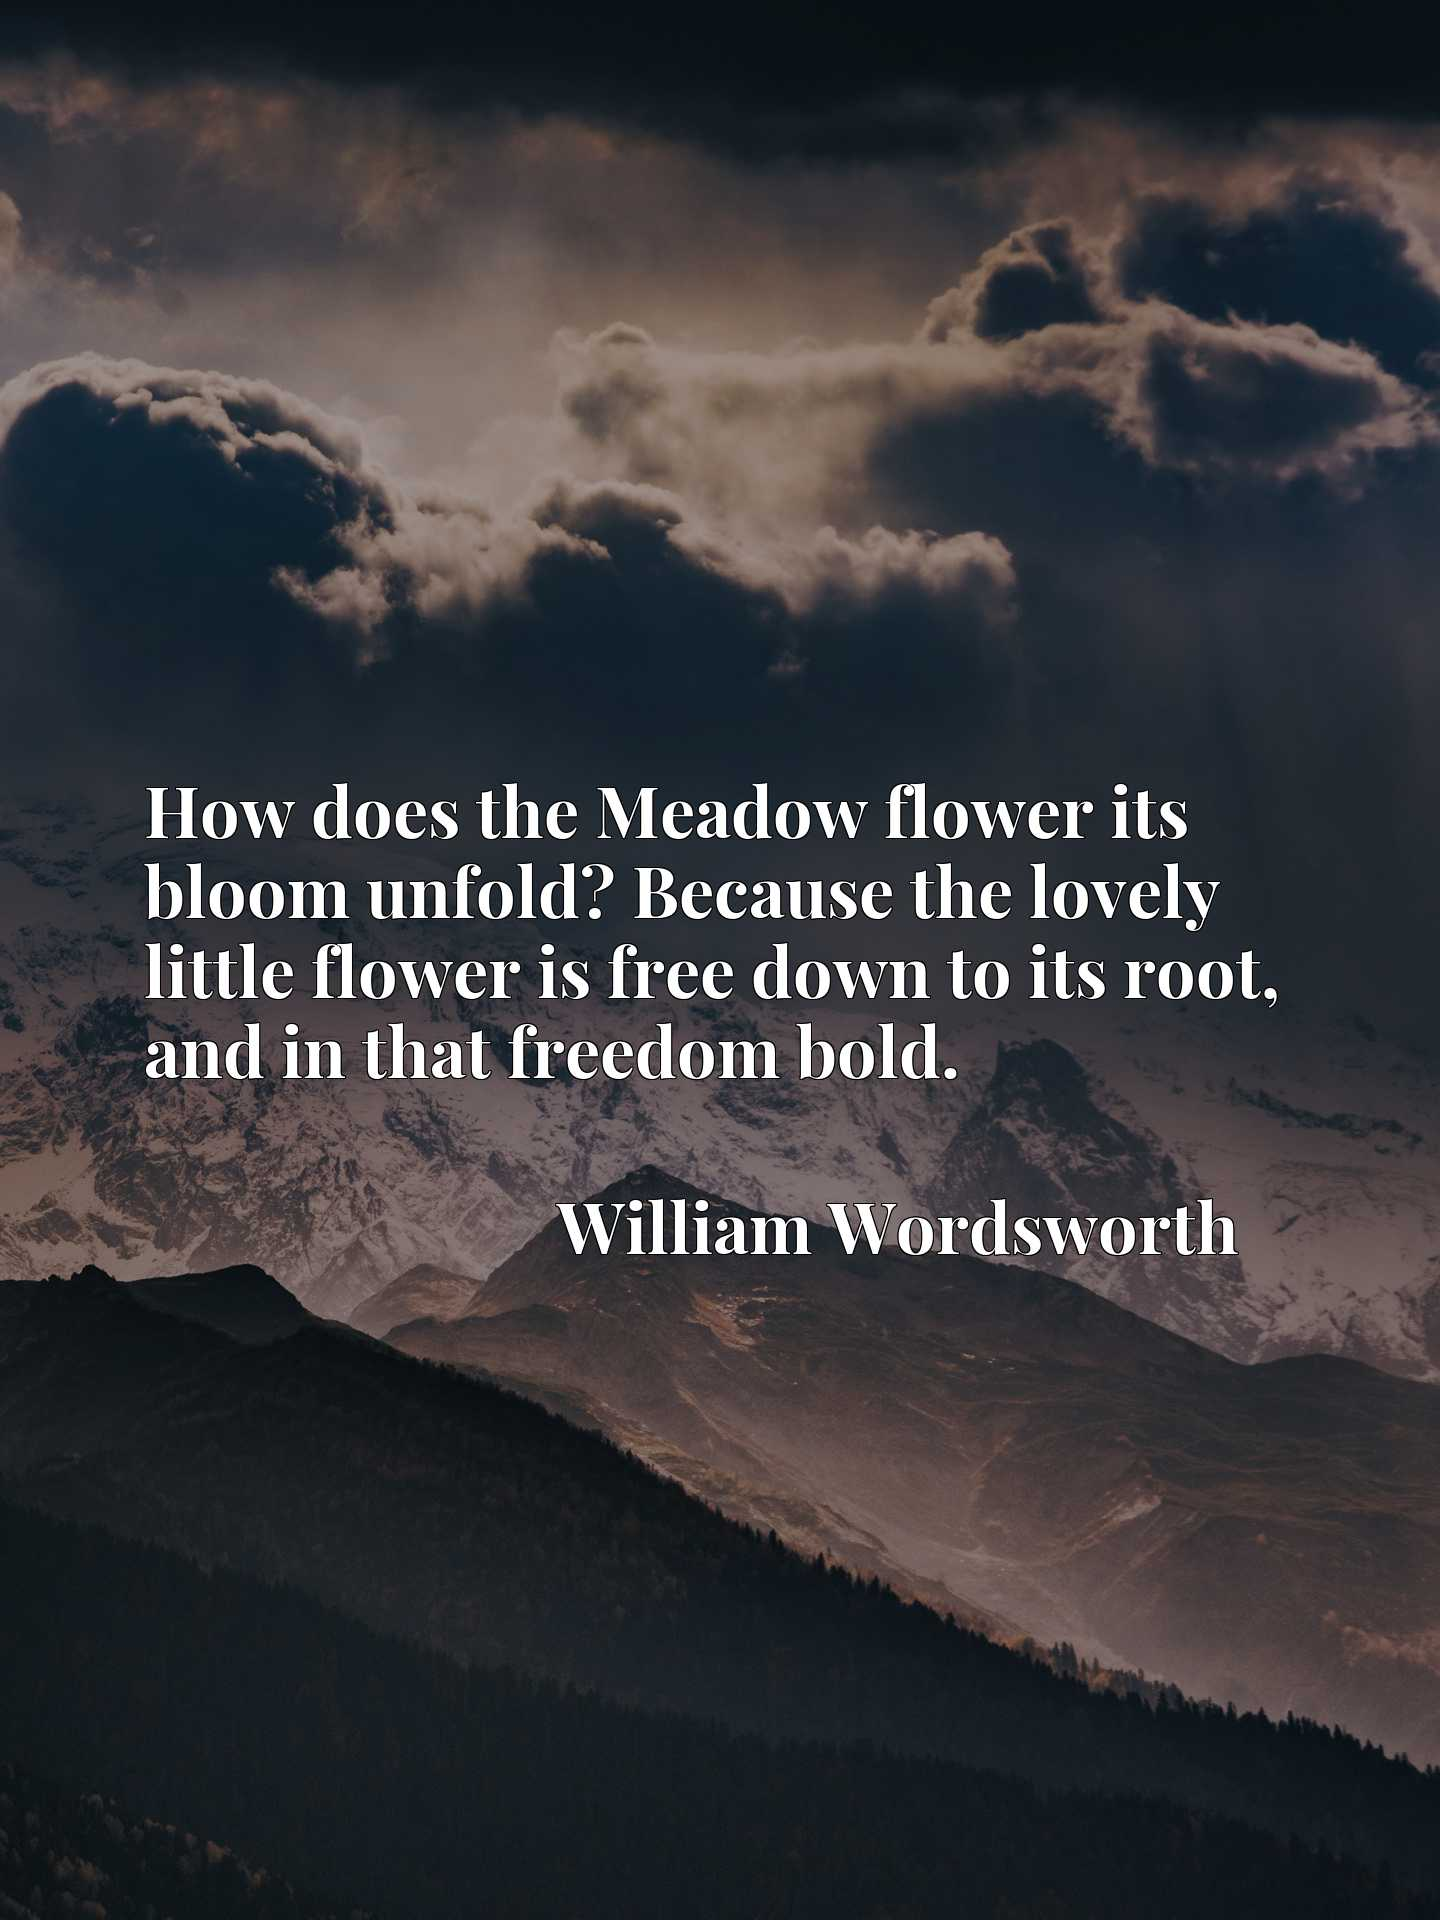 How does the Meadow flower its bloom unfold? Because the lovely little flower is free down to its root, and in that freedom bold.